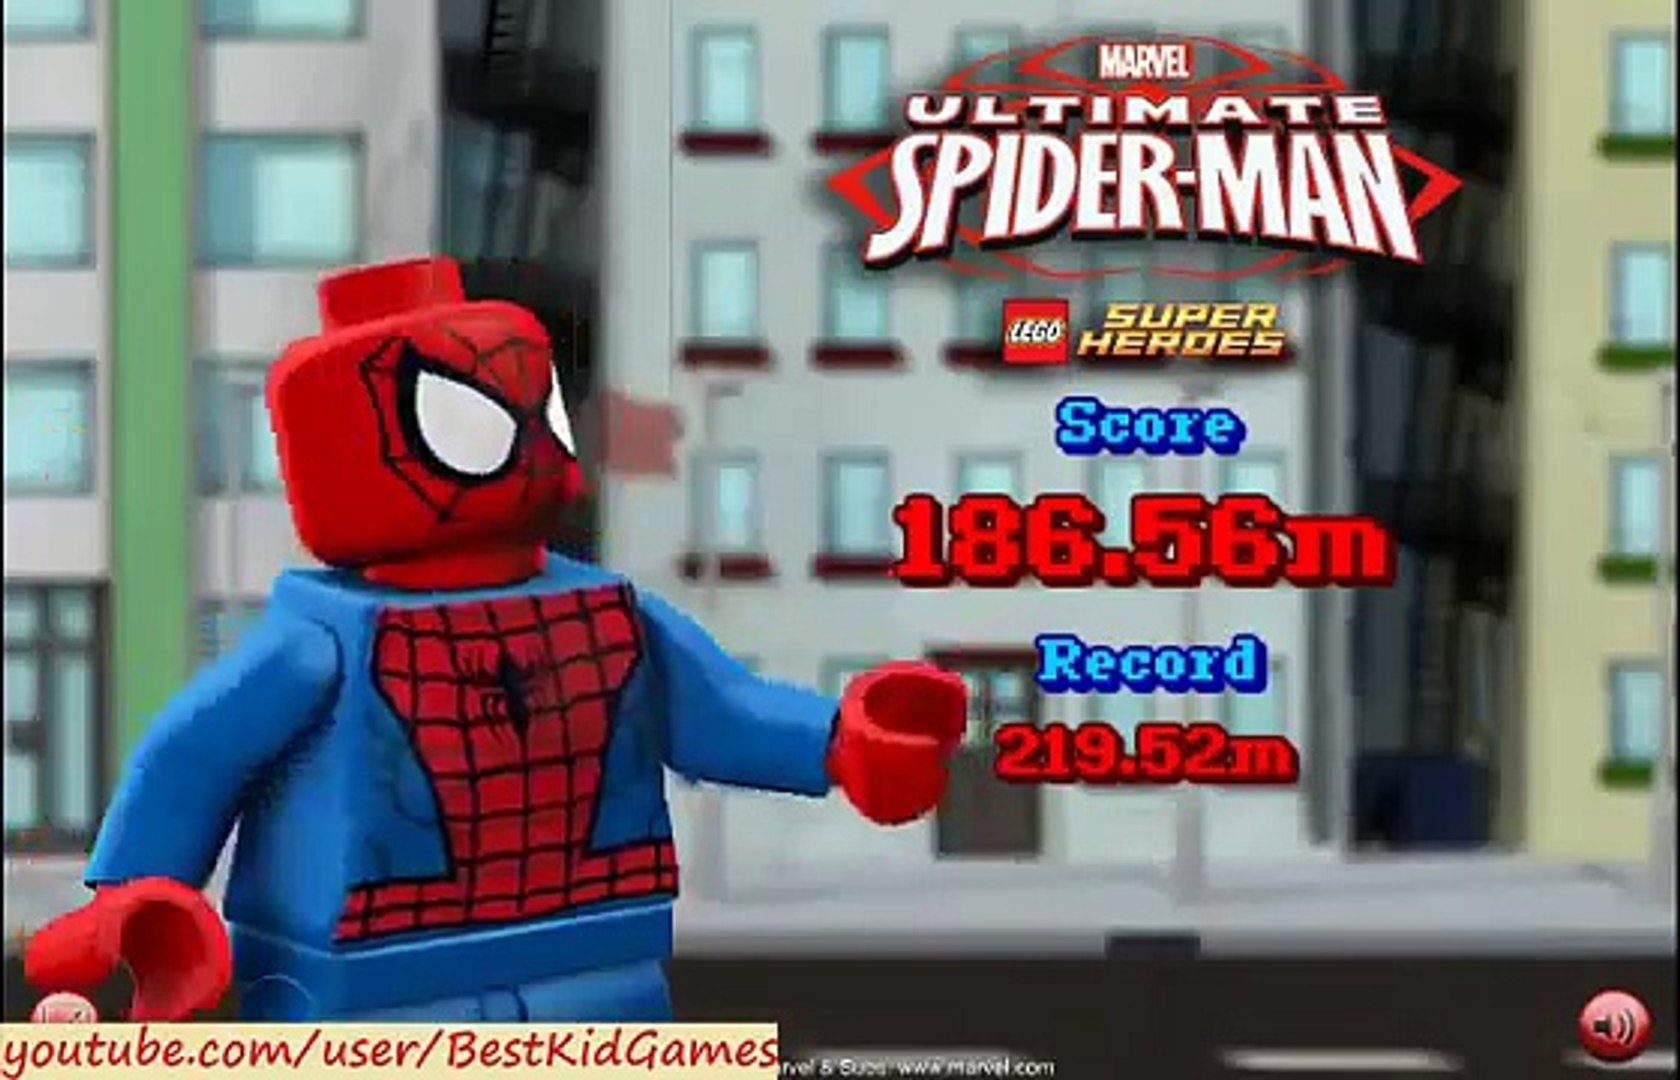 Lego Game, LEGO Ultimate SpiderMan Game , New Lego Game